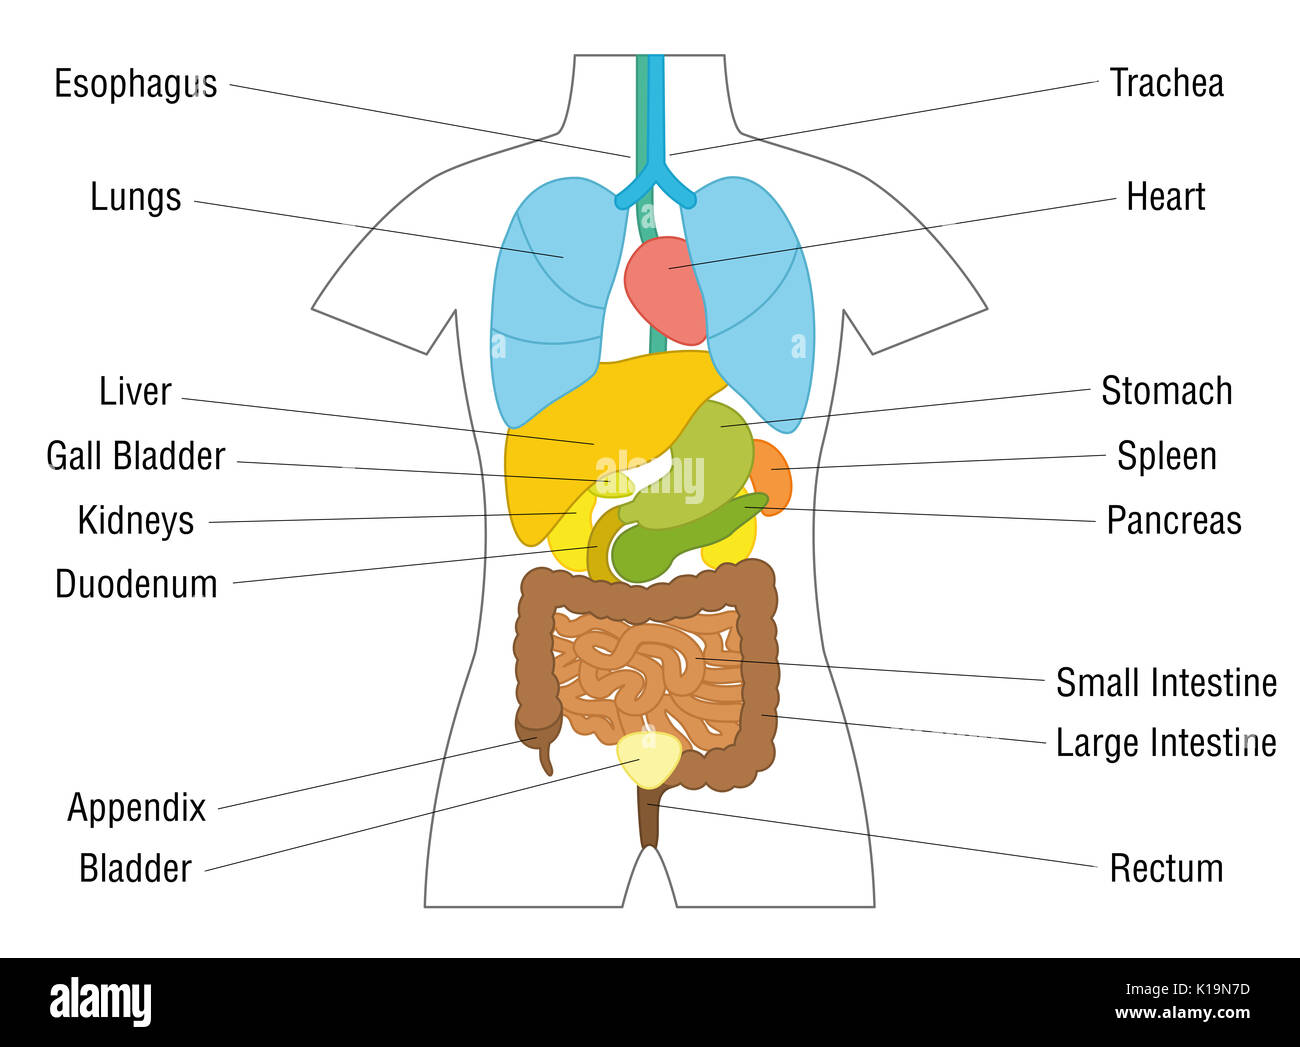 Internal organs chart - schematic anatomy diagram with colored ...